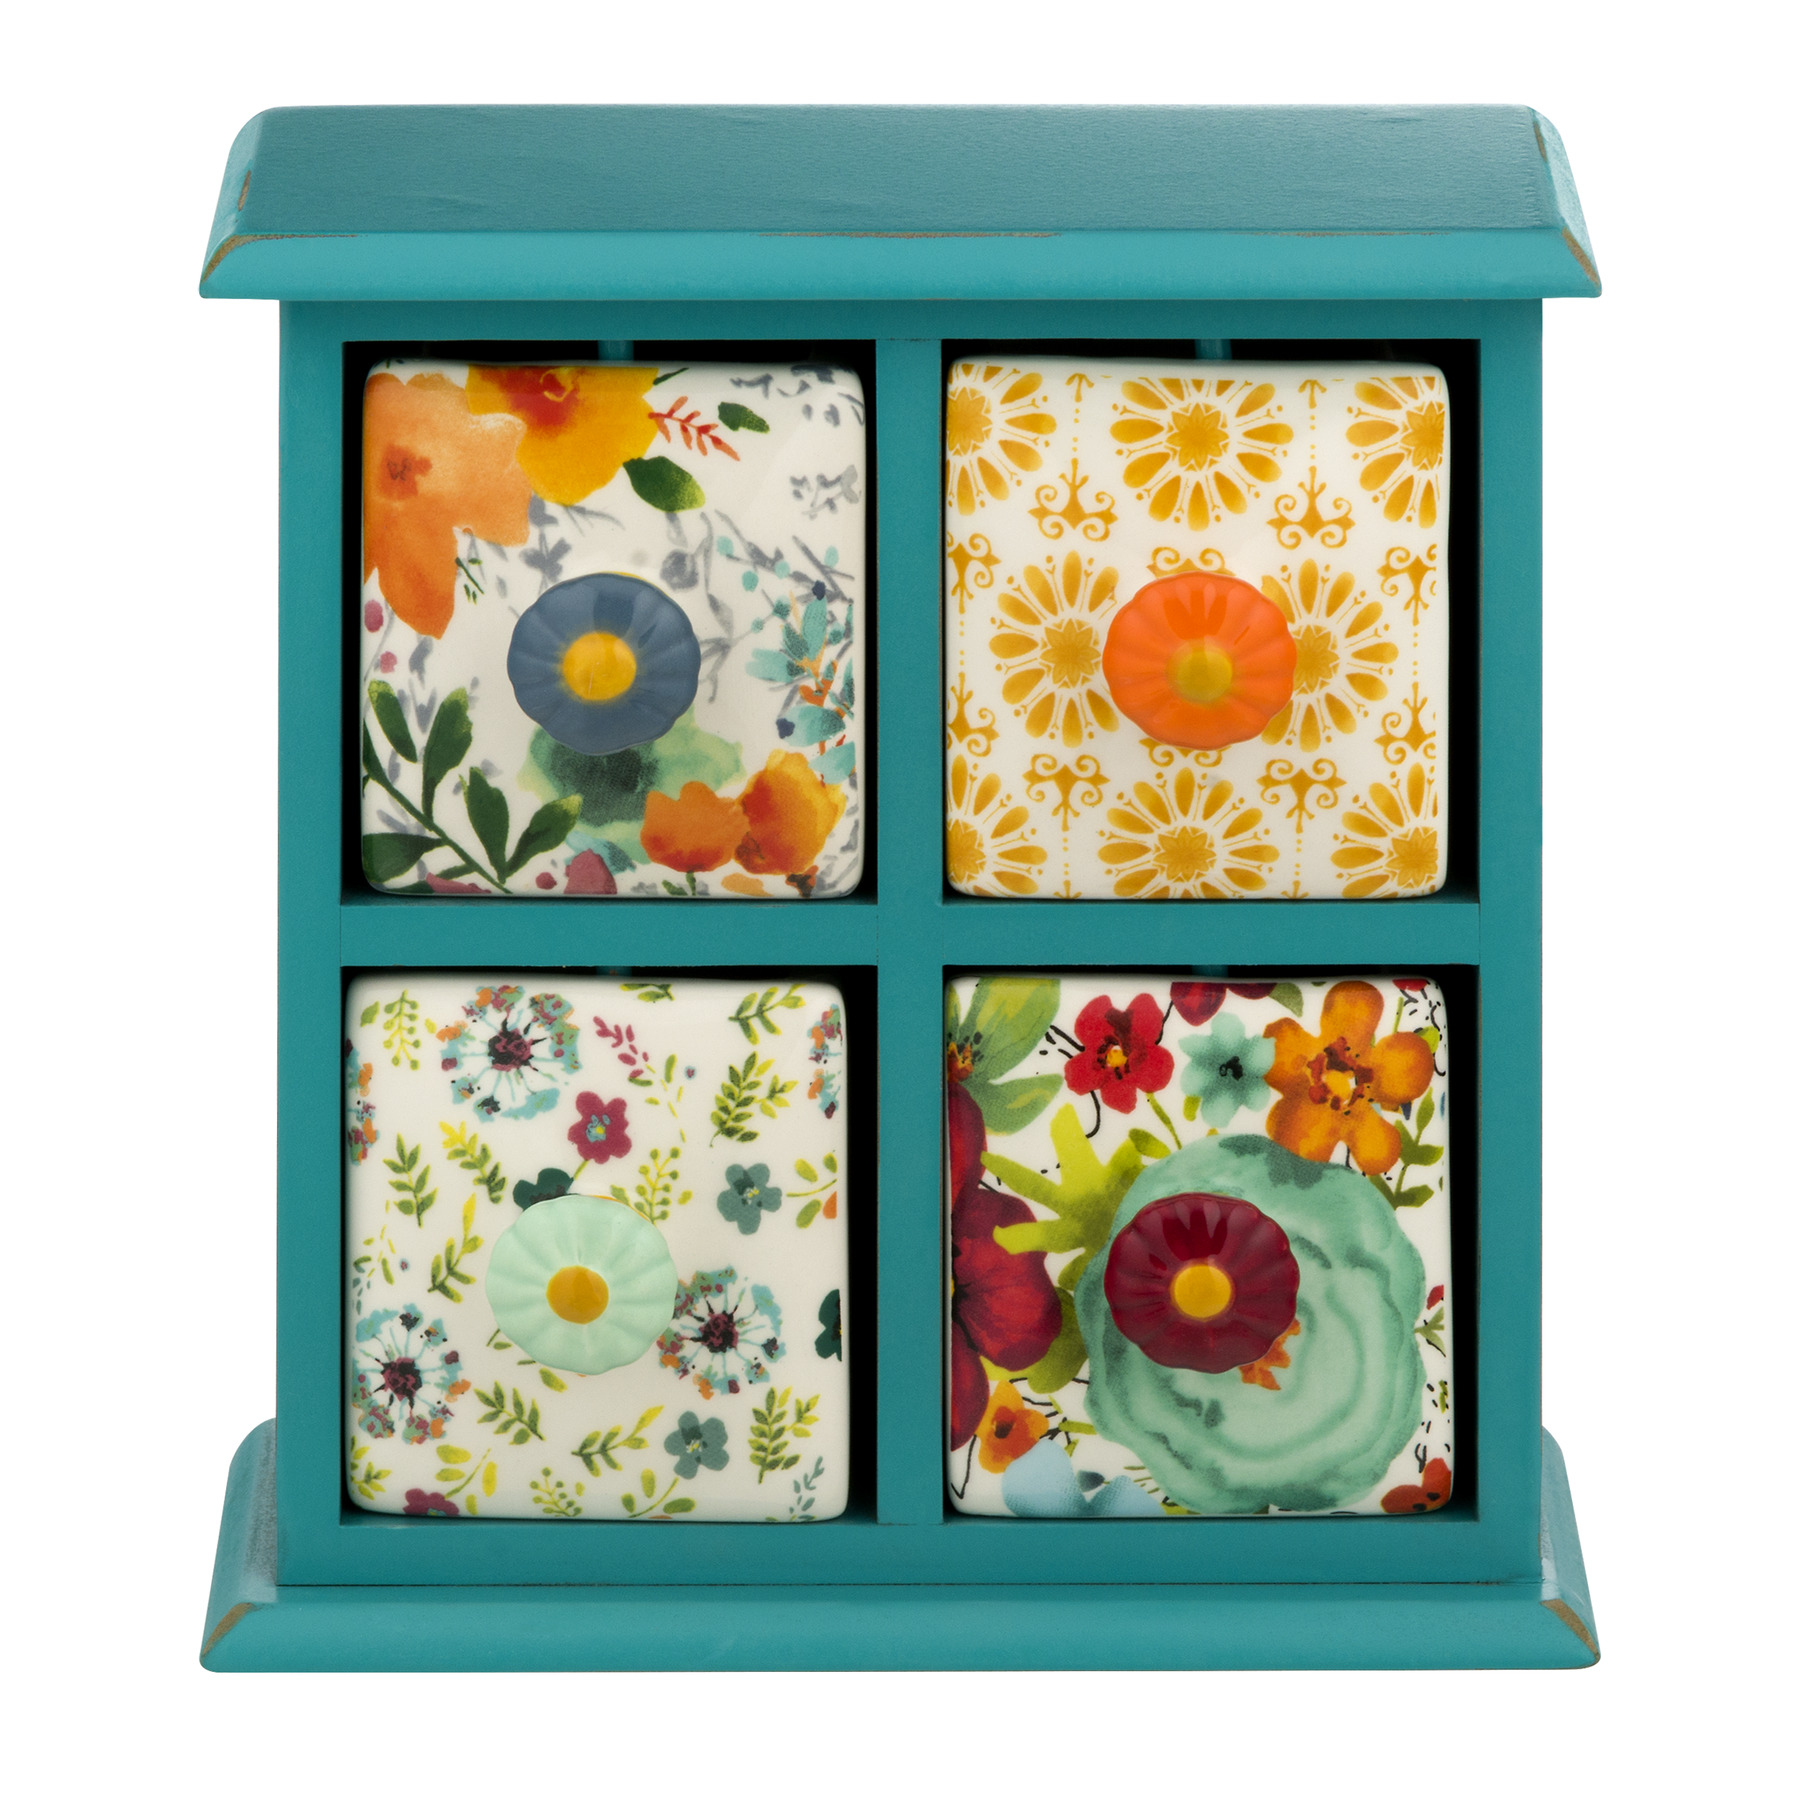 The Pioneer Woman Flea Market Distressed 4-Drawer Spice/Tea Box, Teal